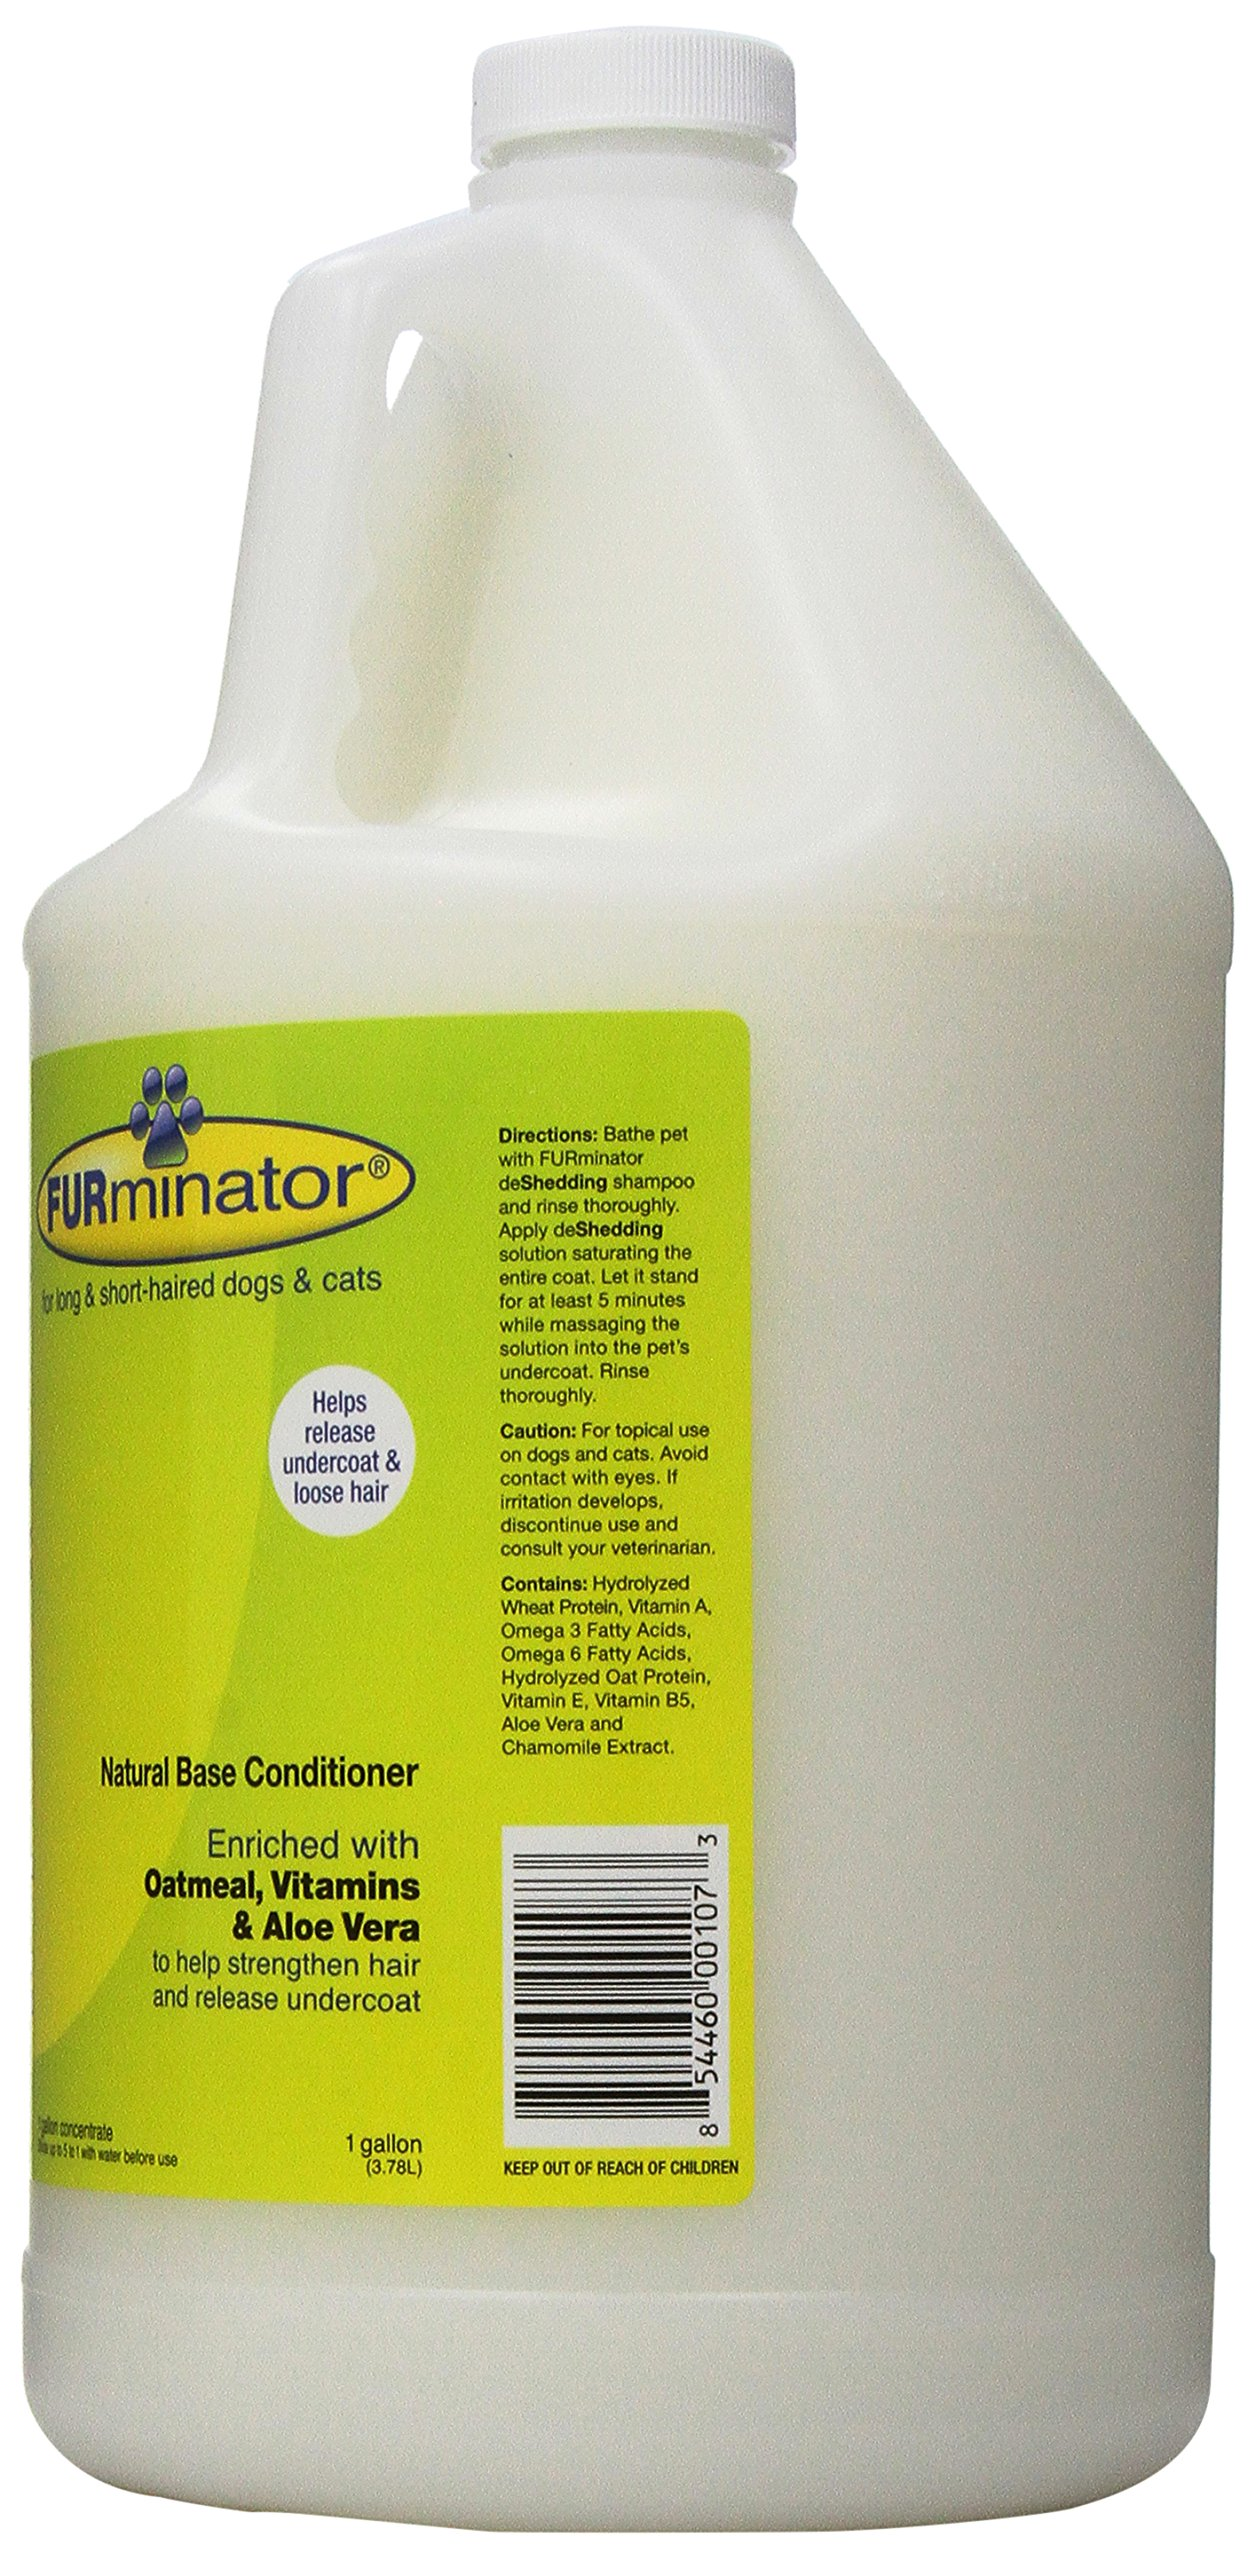 Furminator deShedding Ultra Premium Dog Conditioner, 1-Gallon by Furminator